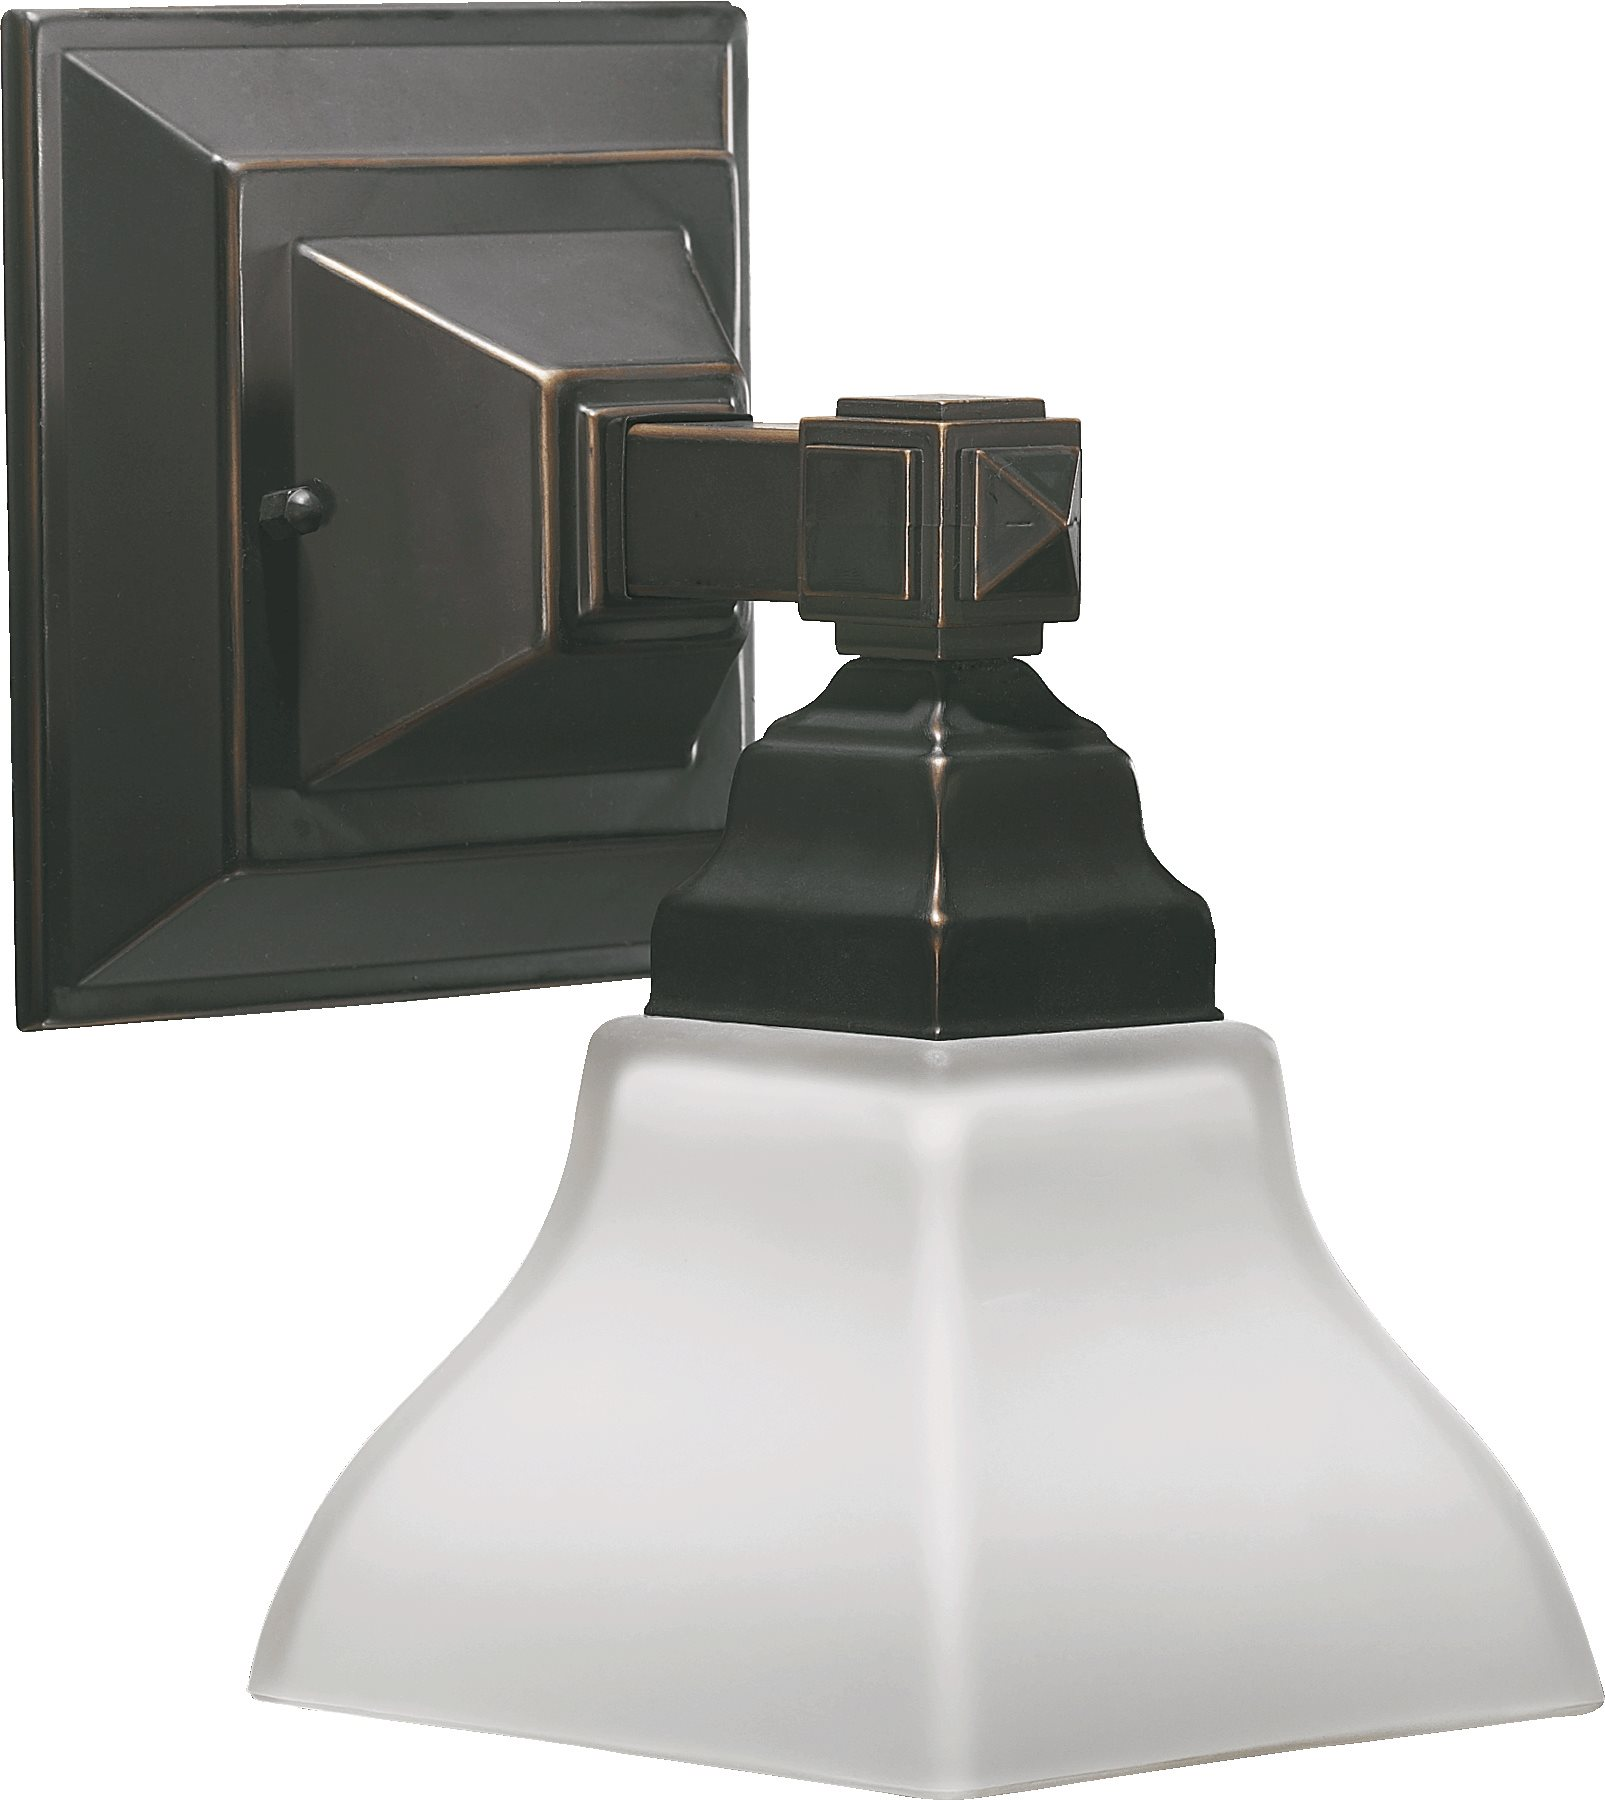 Craftsman Wall Sconce With Switch : Quorum Lighting 5420-1 Craftsman Transitional Wall Sconce QR-5420-1